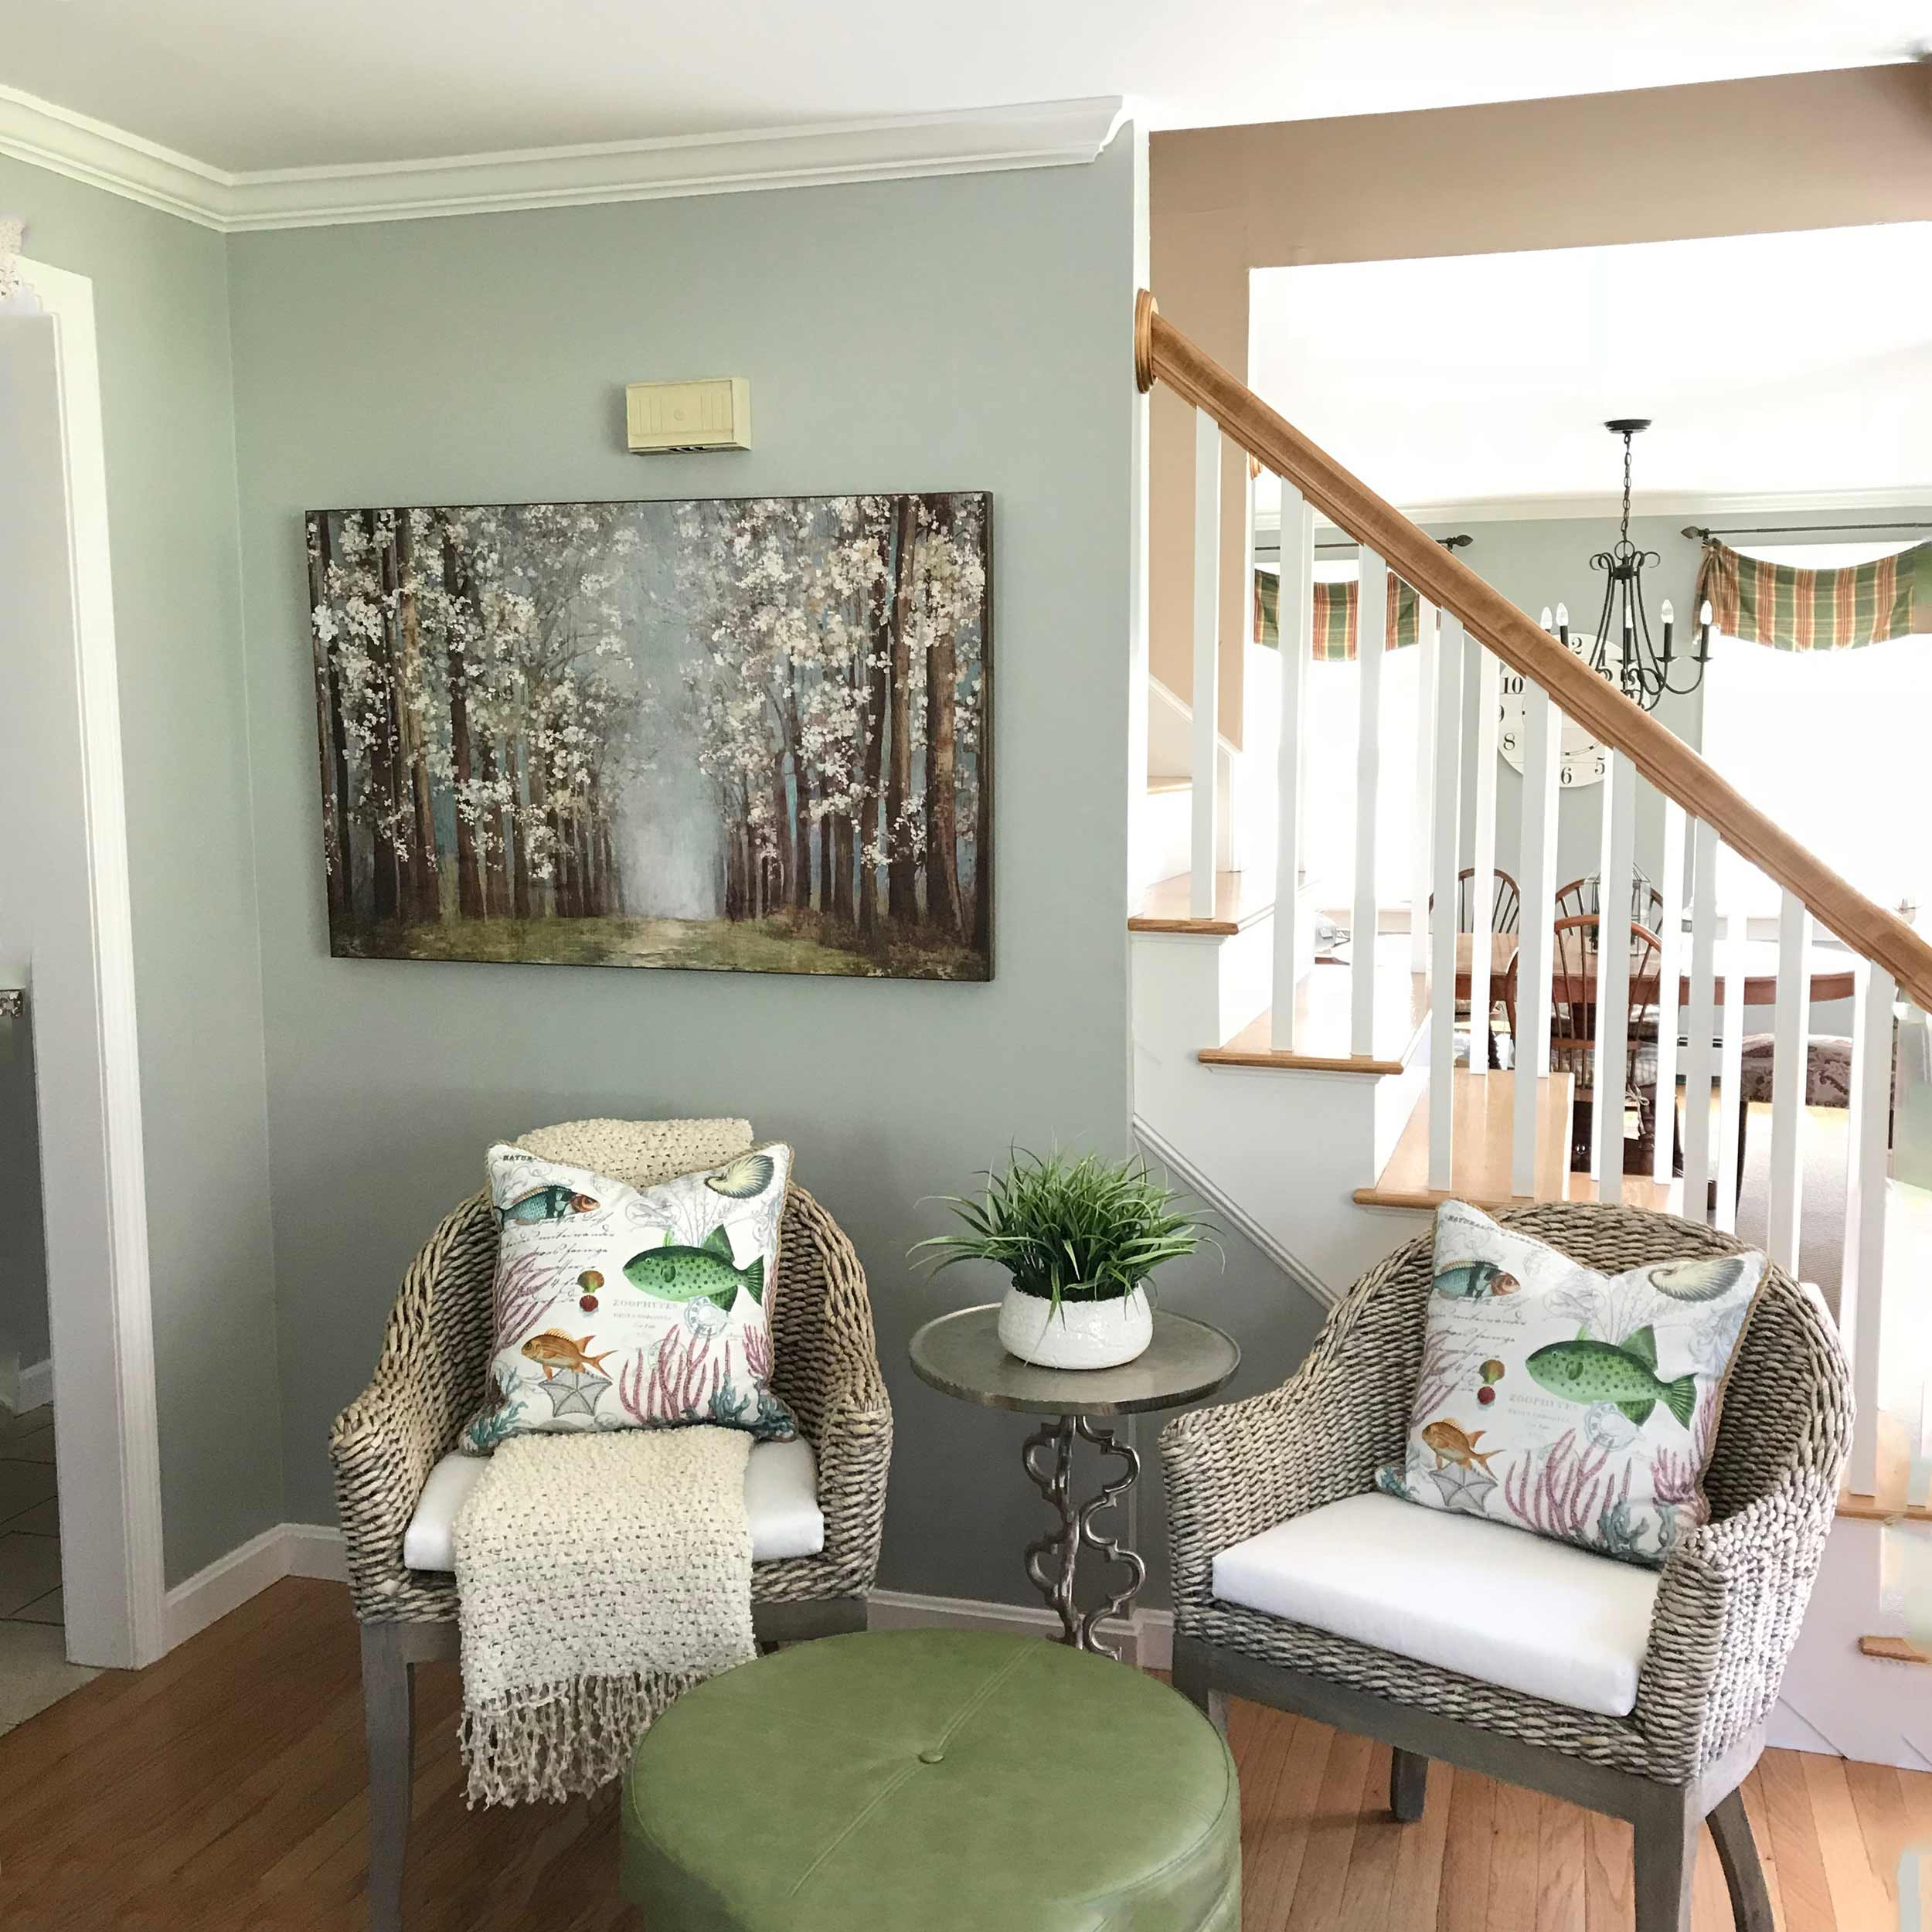 home-staging-services-in-new-hampshire.jpg